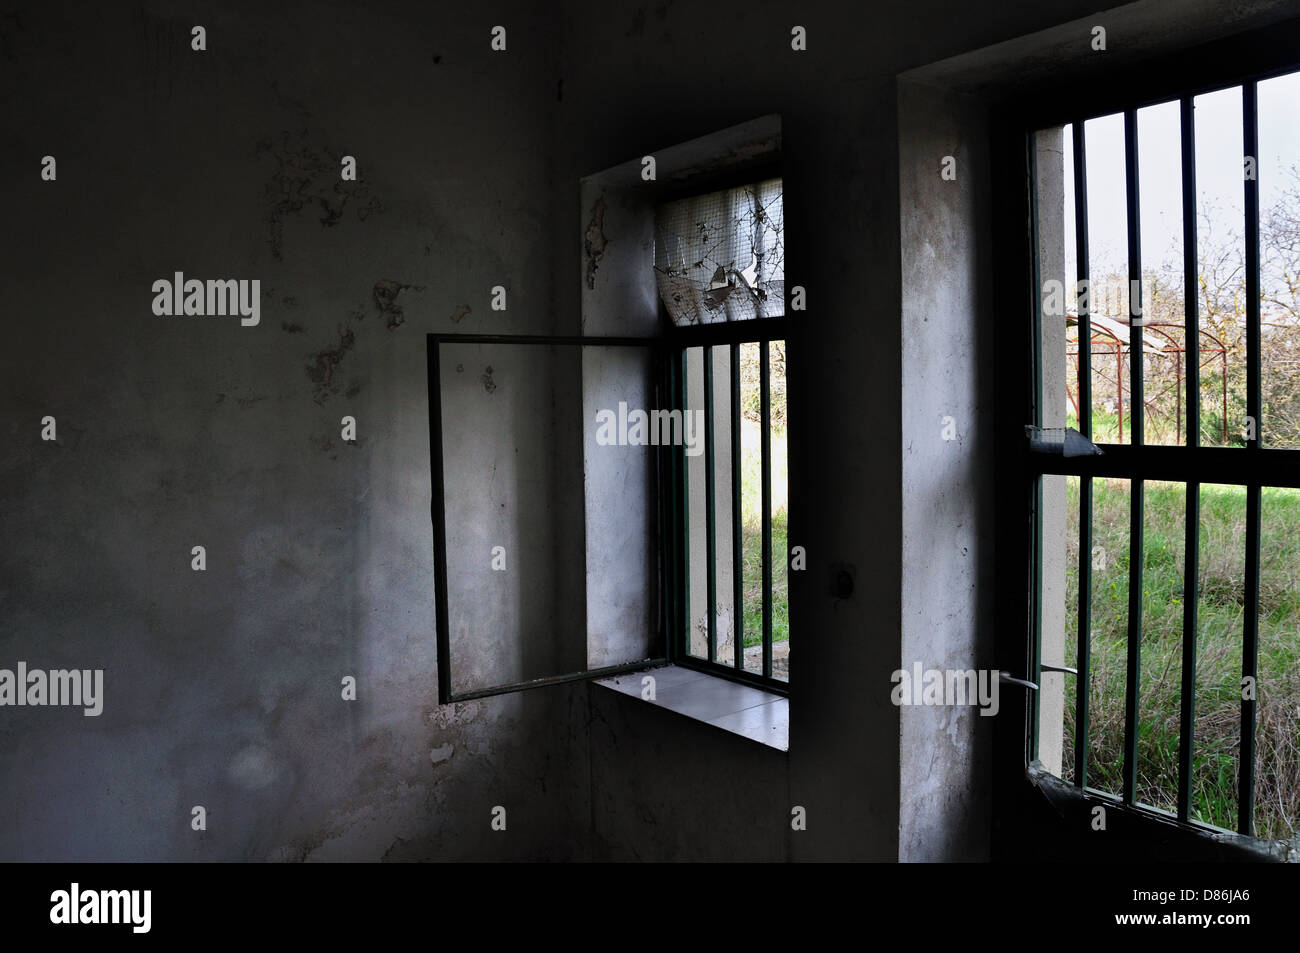 Barred door and windows in abandoned house interior. & Barred door and windows in abandoned house interior Stock Photo ...